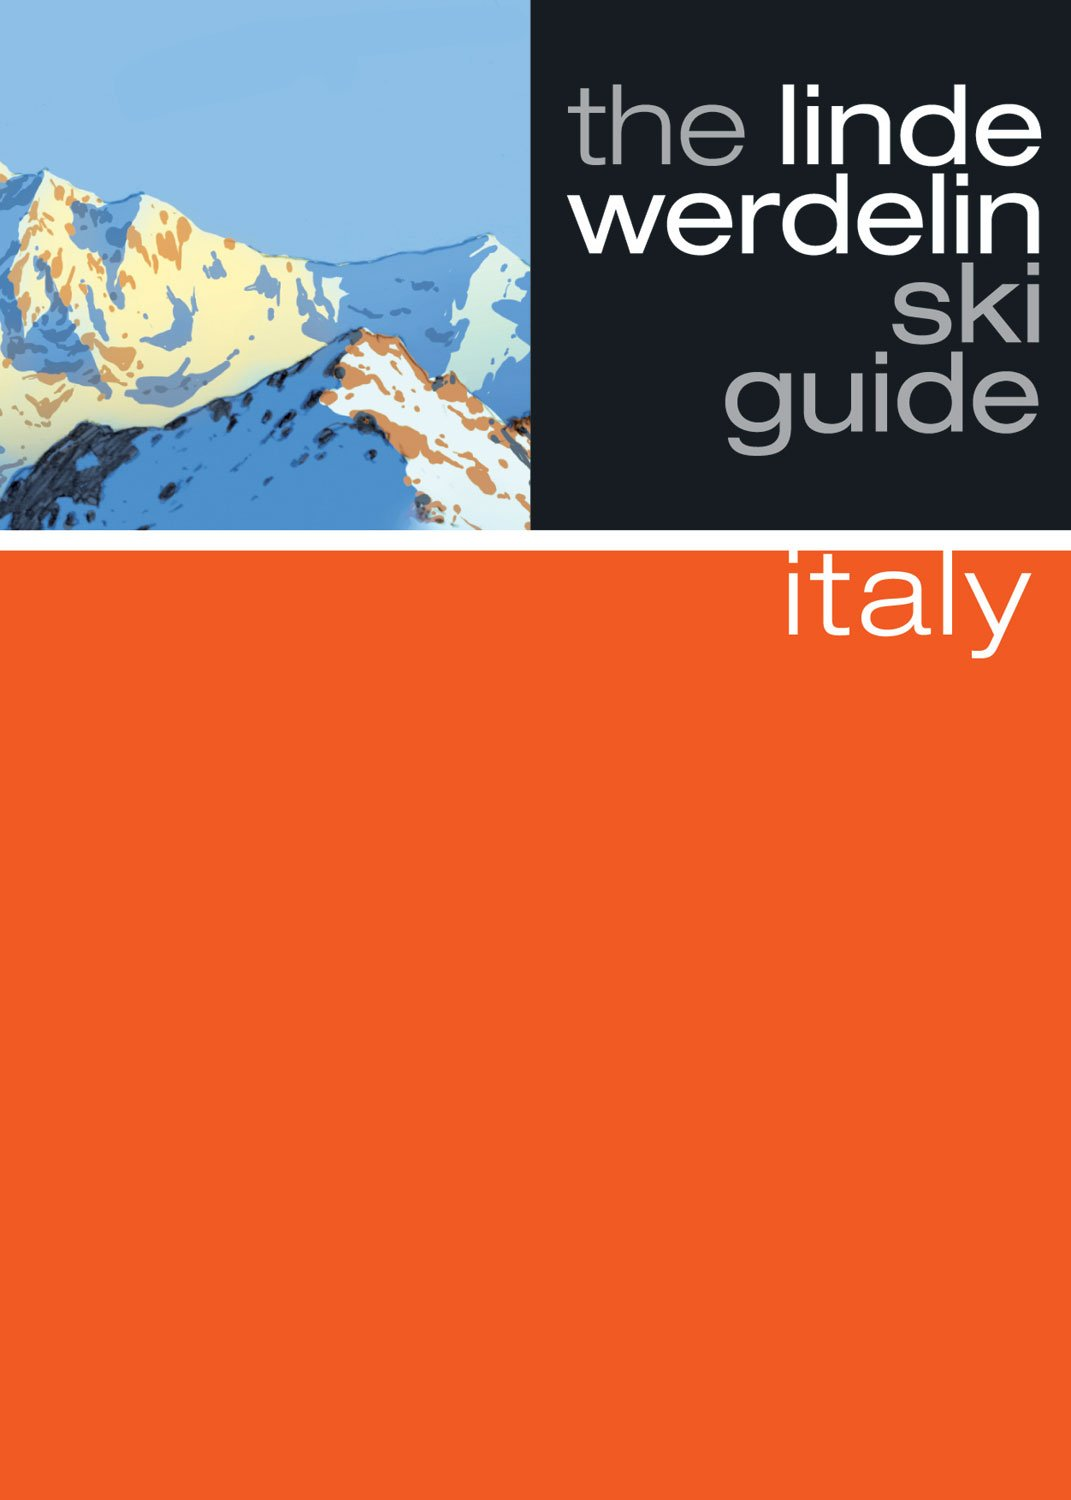 The Linde Werdelin Ski Guide Italy (Linde Werdelin Ski Guides)